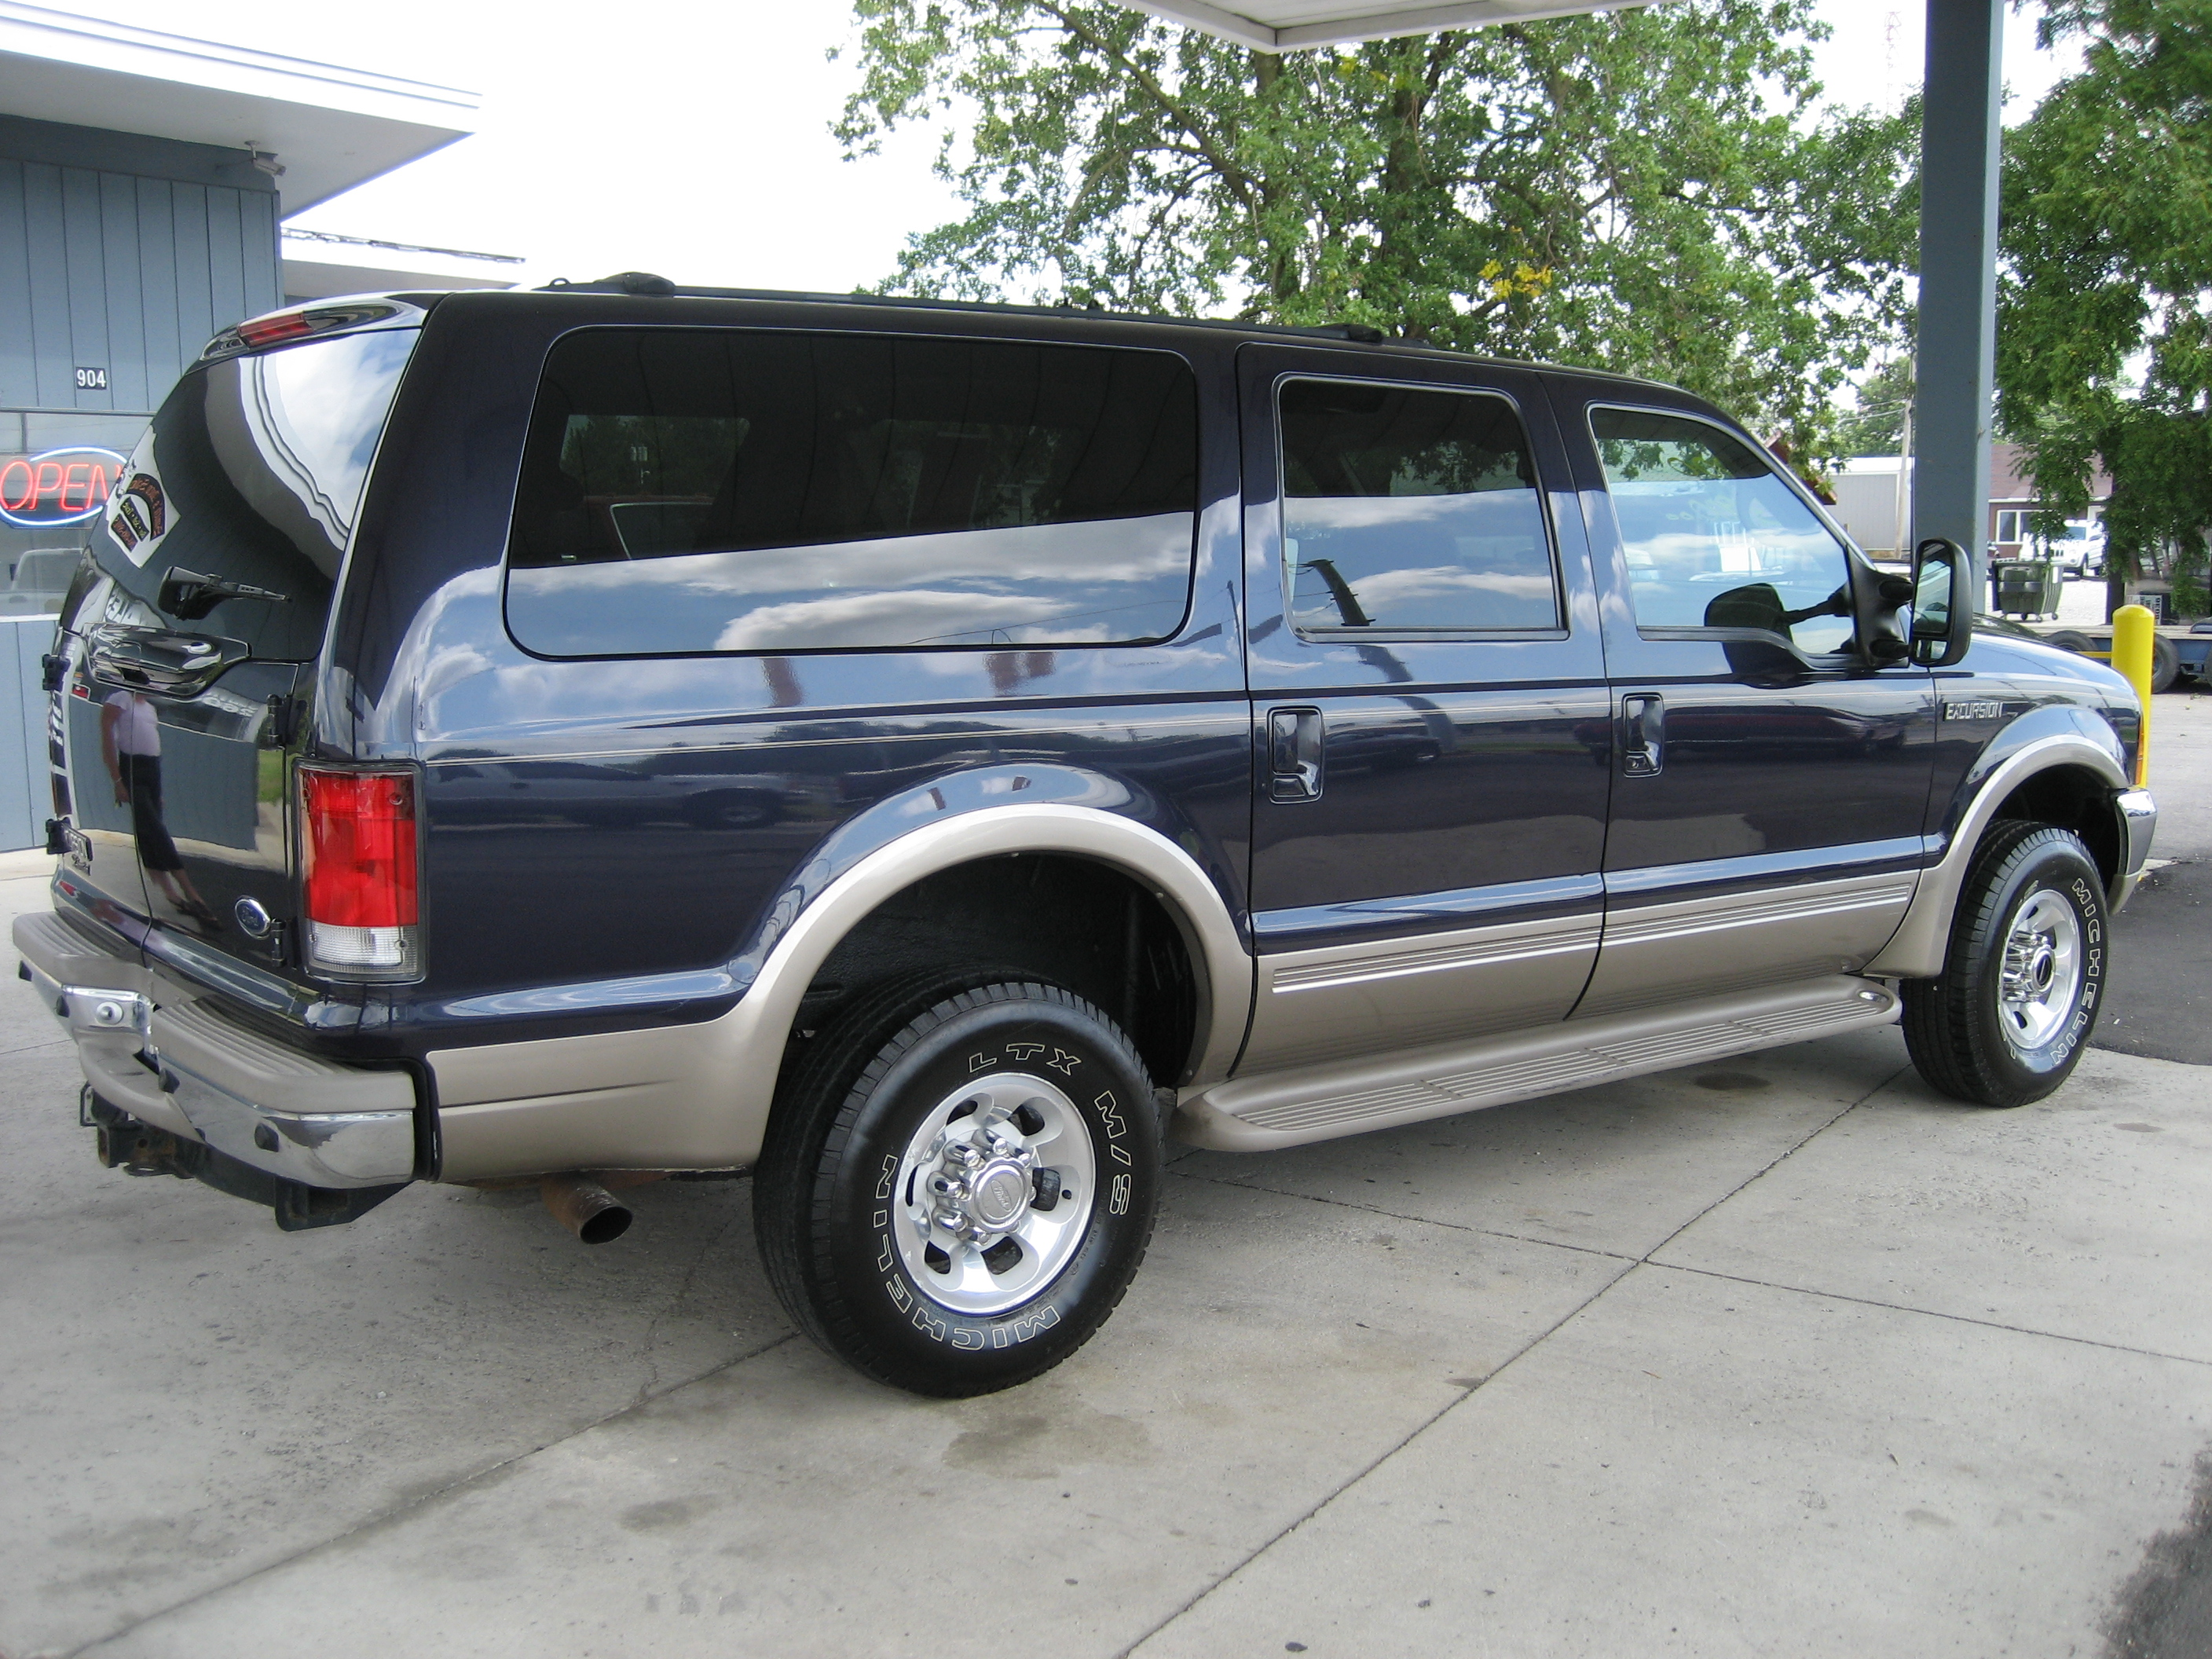 Ford excursion photo - 4